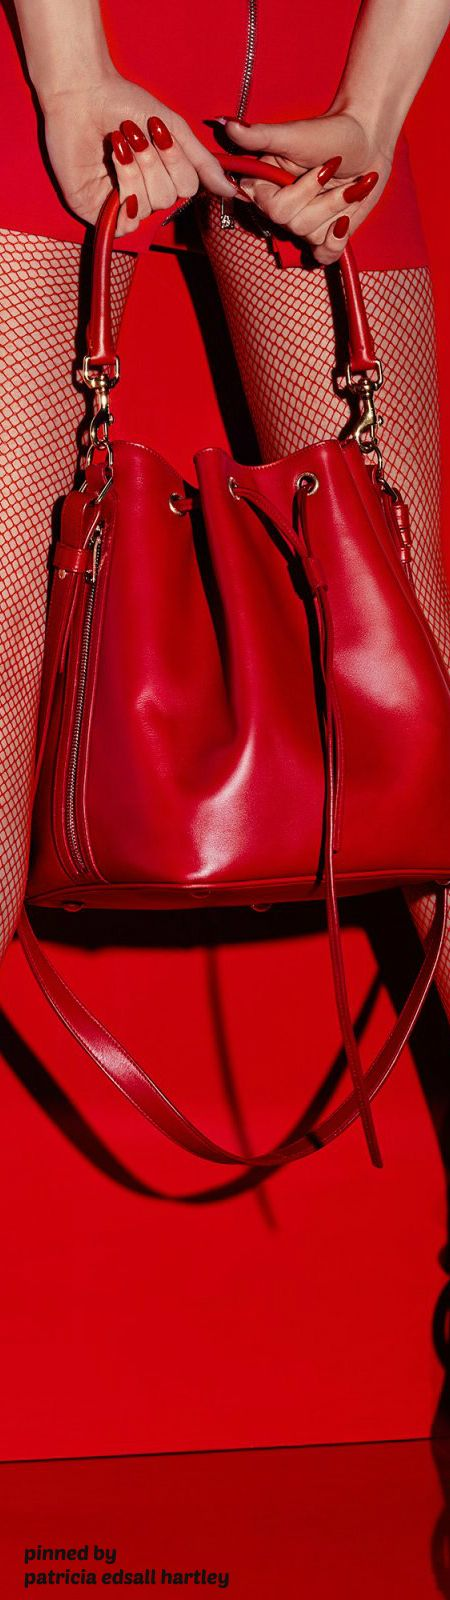 by Piotr Stoklosa [red purse and nails]                                                                                                                                                                                 More